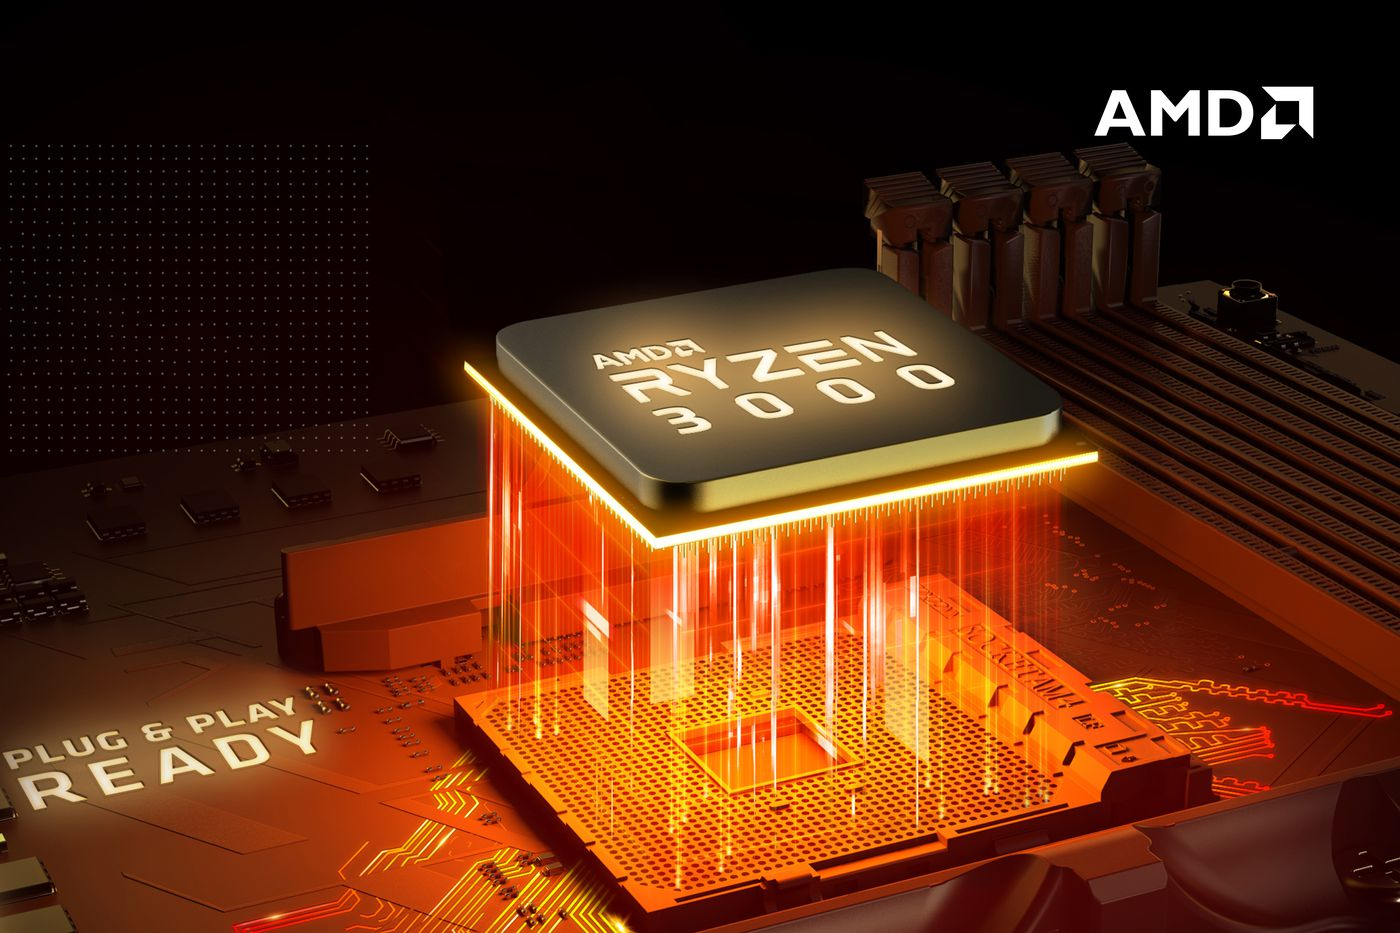 Amd Nasdaq Amd Stock Price Target Hiked To 100 By Cowen On Execution Dependability And Product Innovation